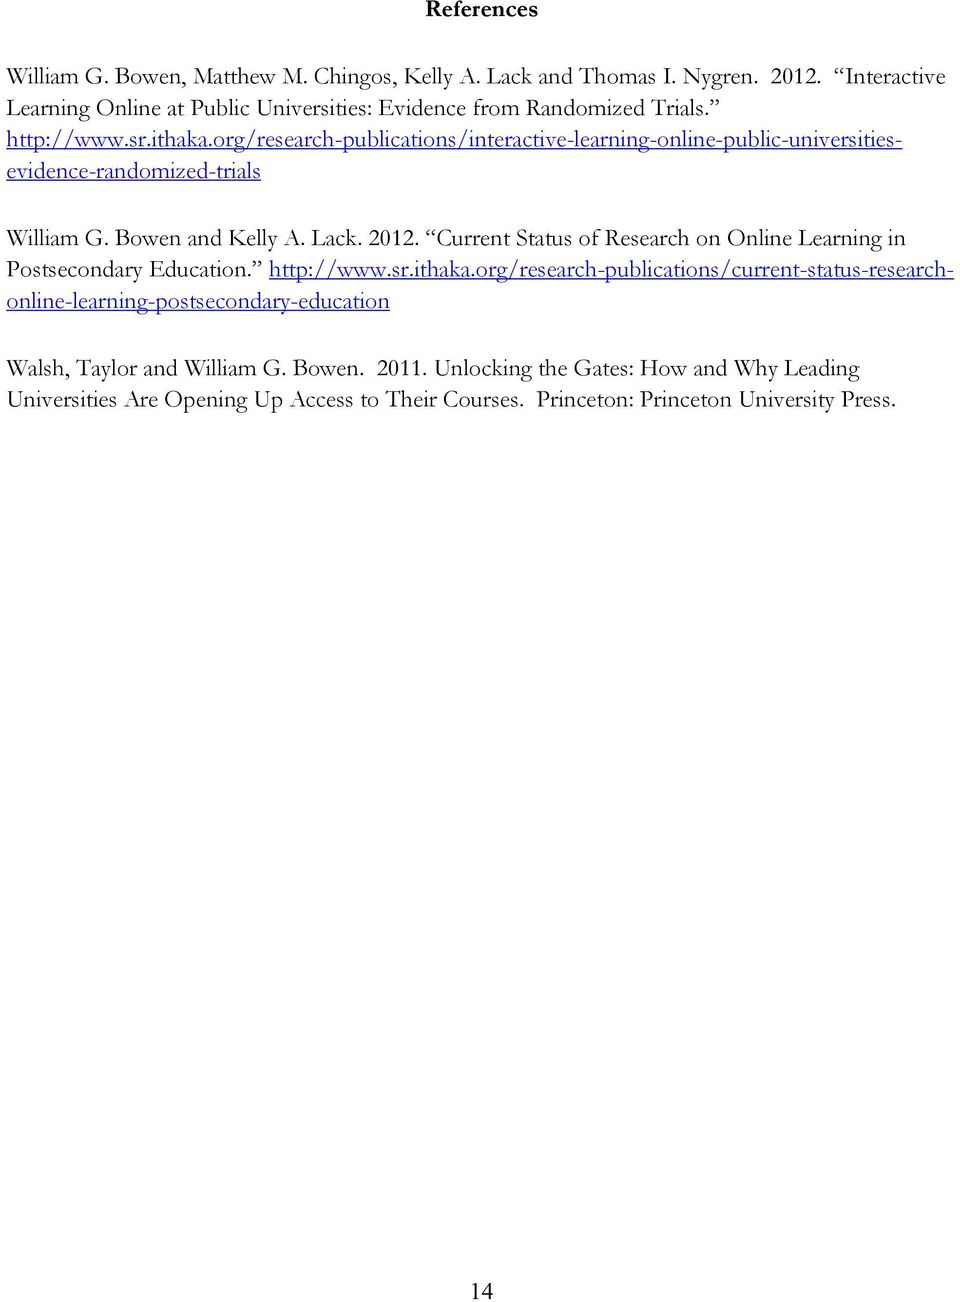 Current Status of Research on Online Learning in Postsecondary Education. http://www.sr.ithaka.